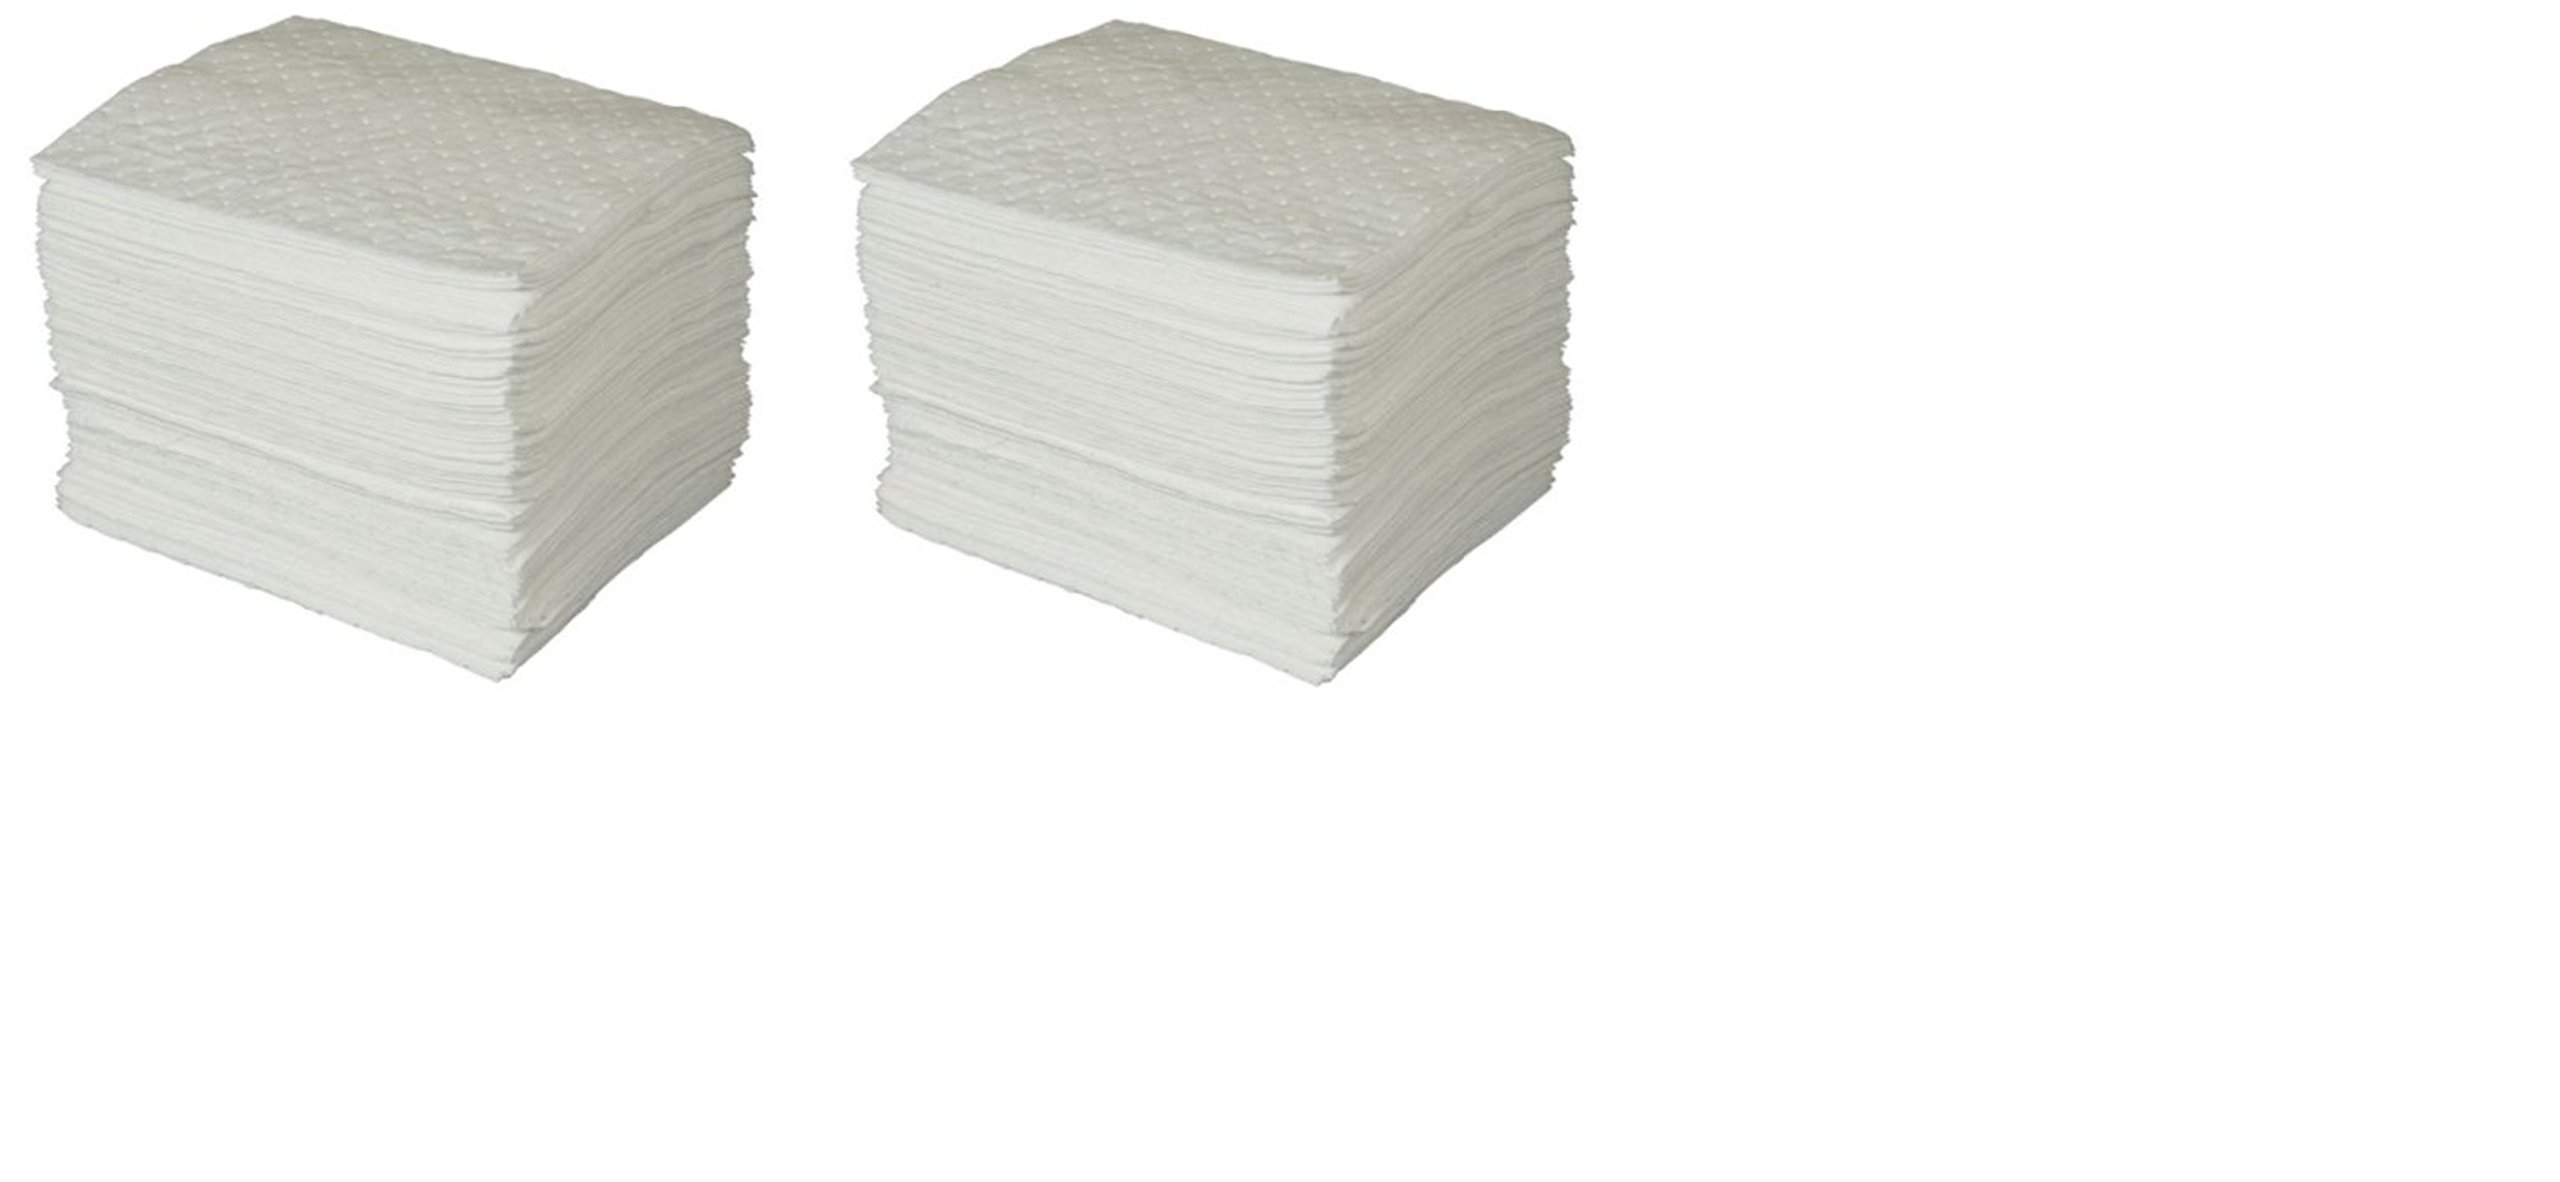 SPC BPO100 BASIC Oil Only Heavy Weight Pad, White, 15'' L x 17'' W (100 Per Bale) (2 Cases) by Brady SPC